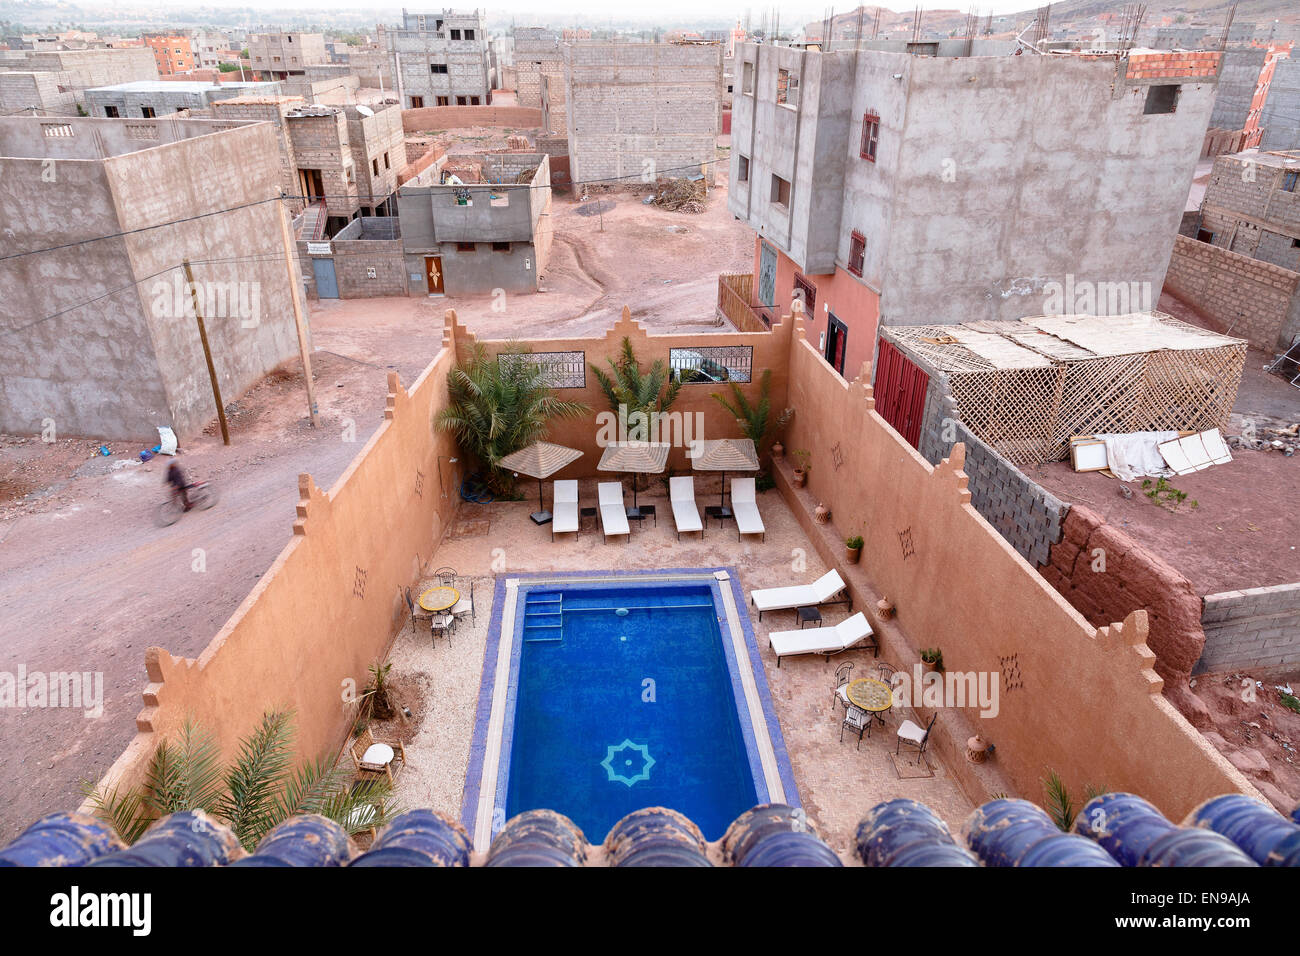 Hotel pool and houses. Quarzazate, Souss-Massa-Draâ, Morocco, Maghreb, North Africa, Africa. - Stock Image